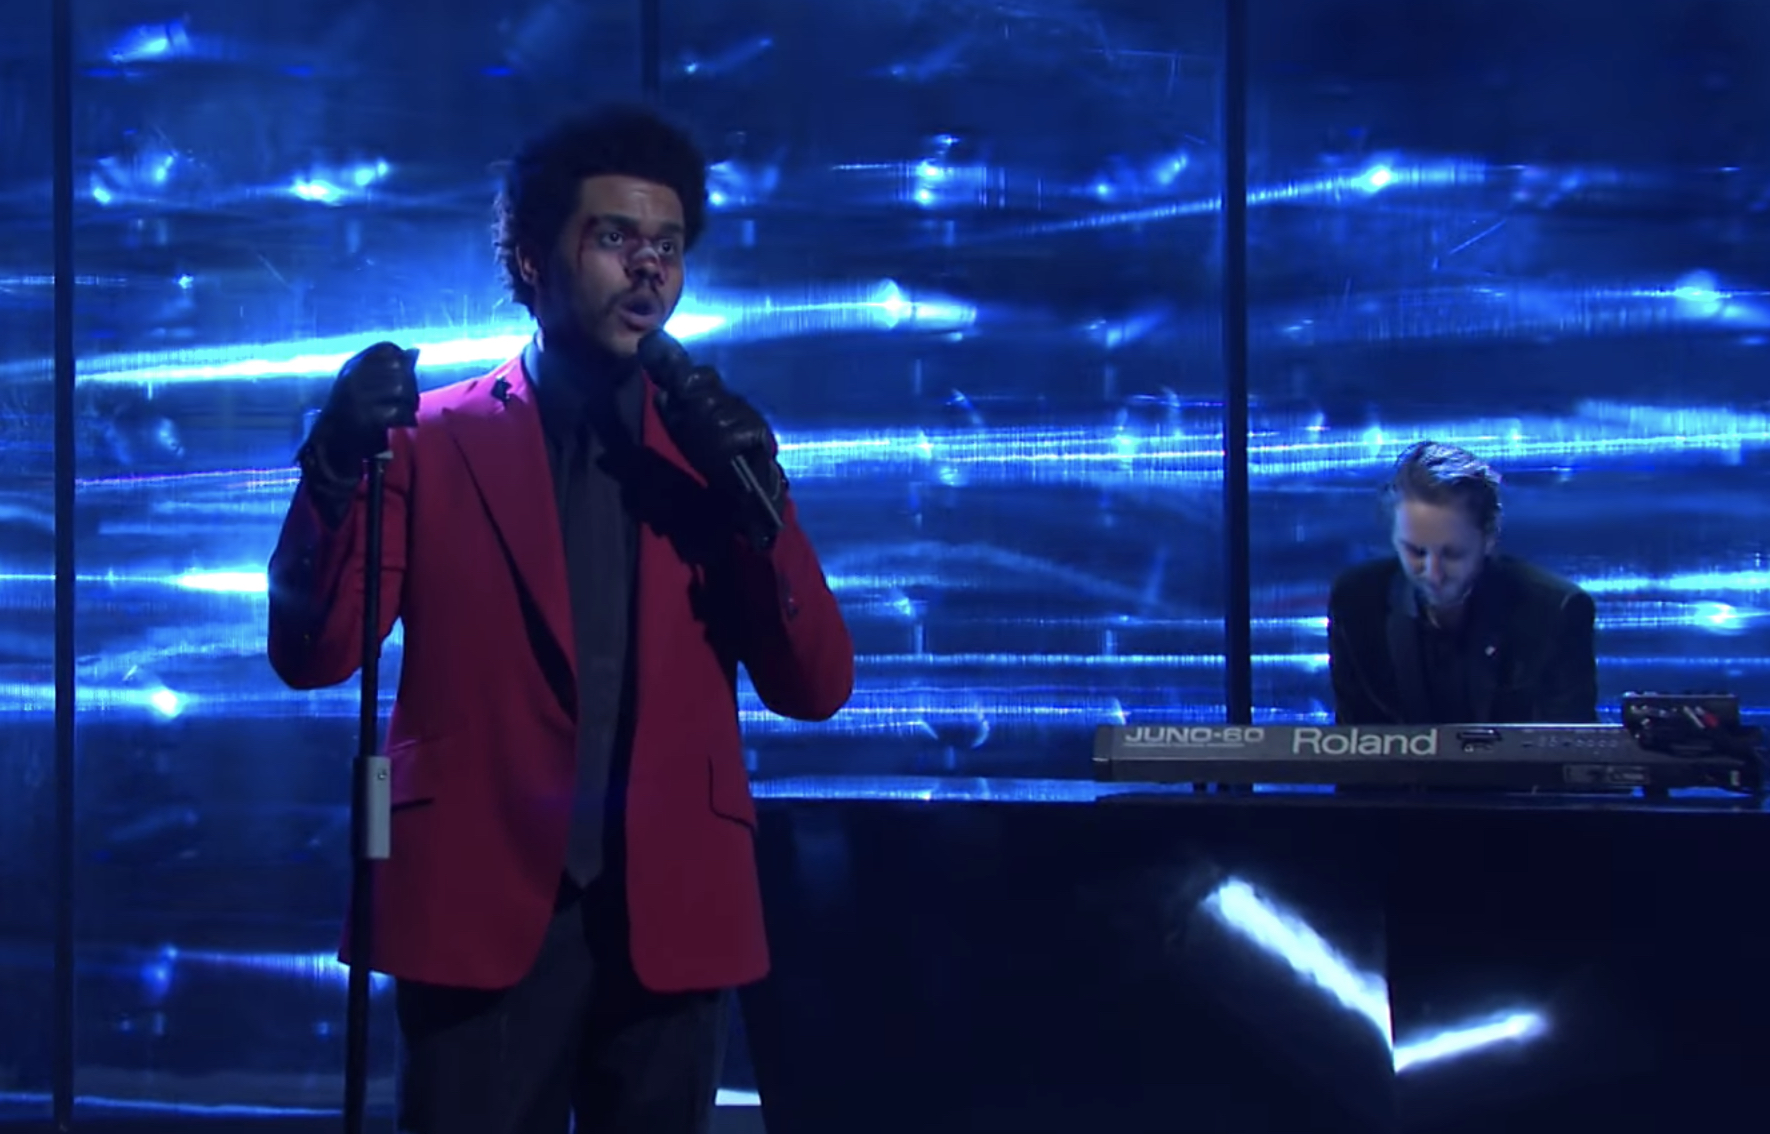 See the Weeknd Debut New Song 'Scared to Live' With Oneohtrix Point Never on 'SNL' - Rolling Stone